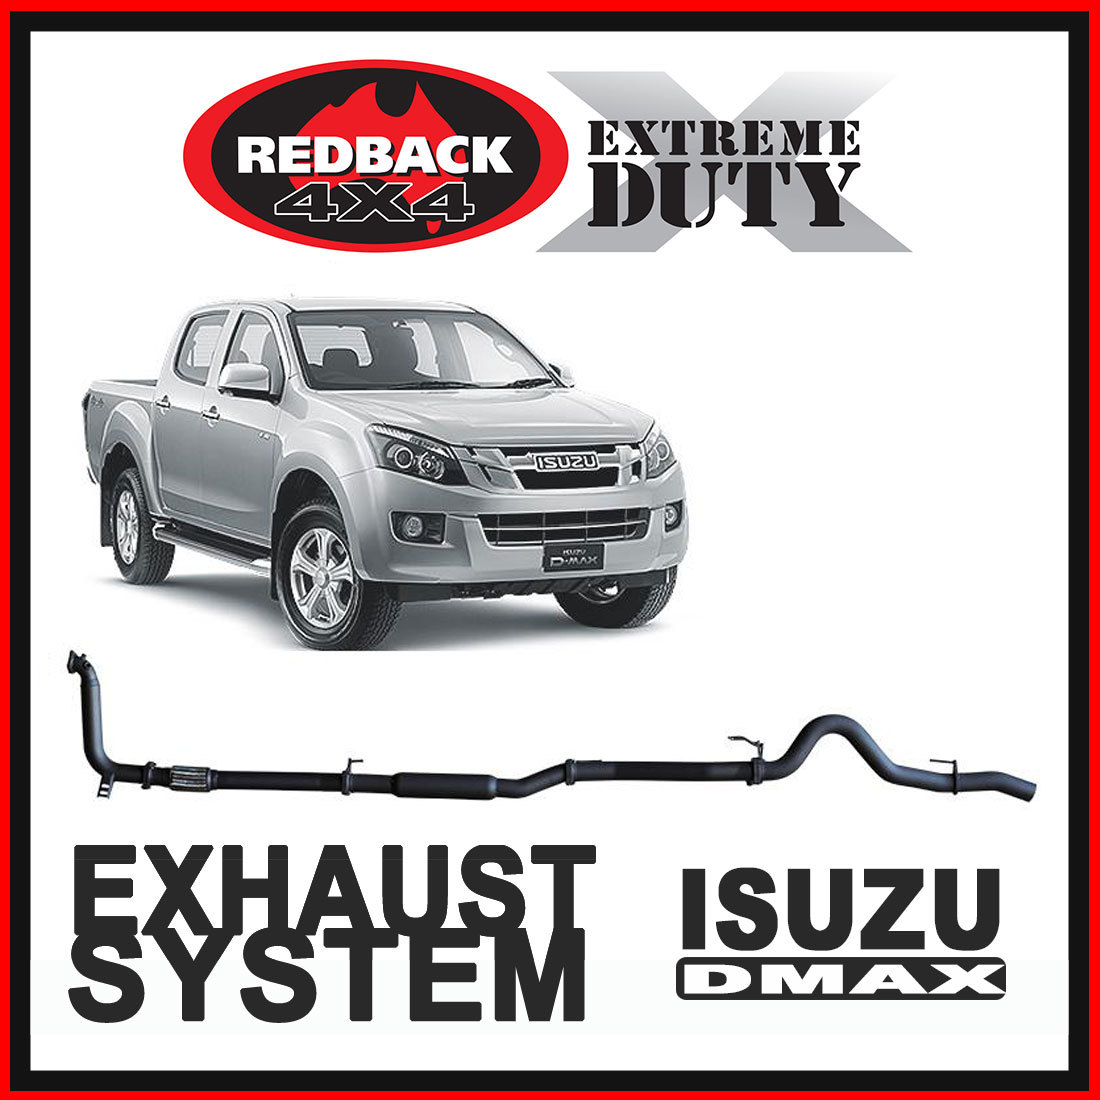 Isuzu D-Max RC 3L 2007 - 2012 Redback Extreme Duty Exhaust image